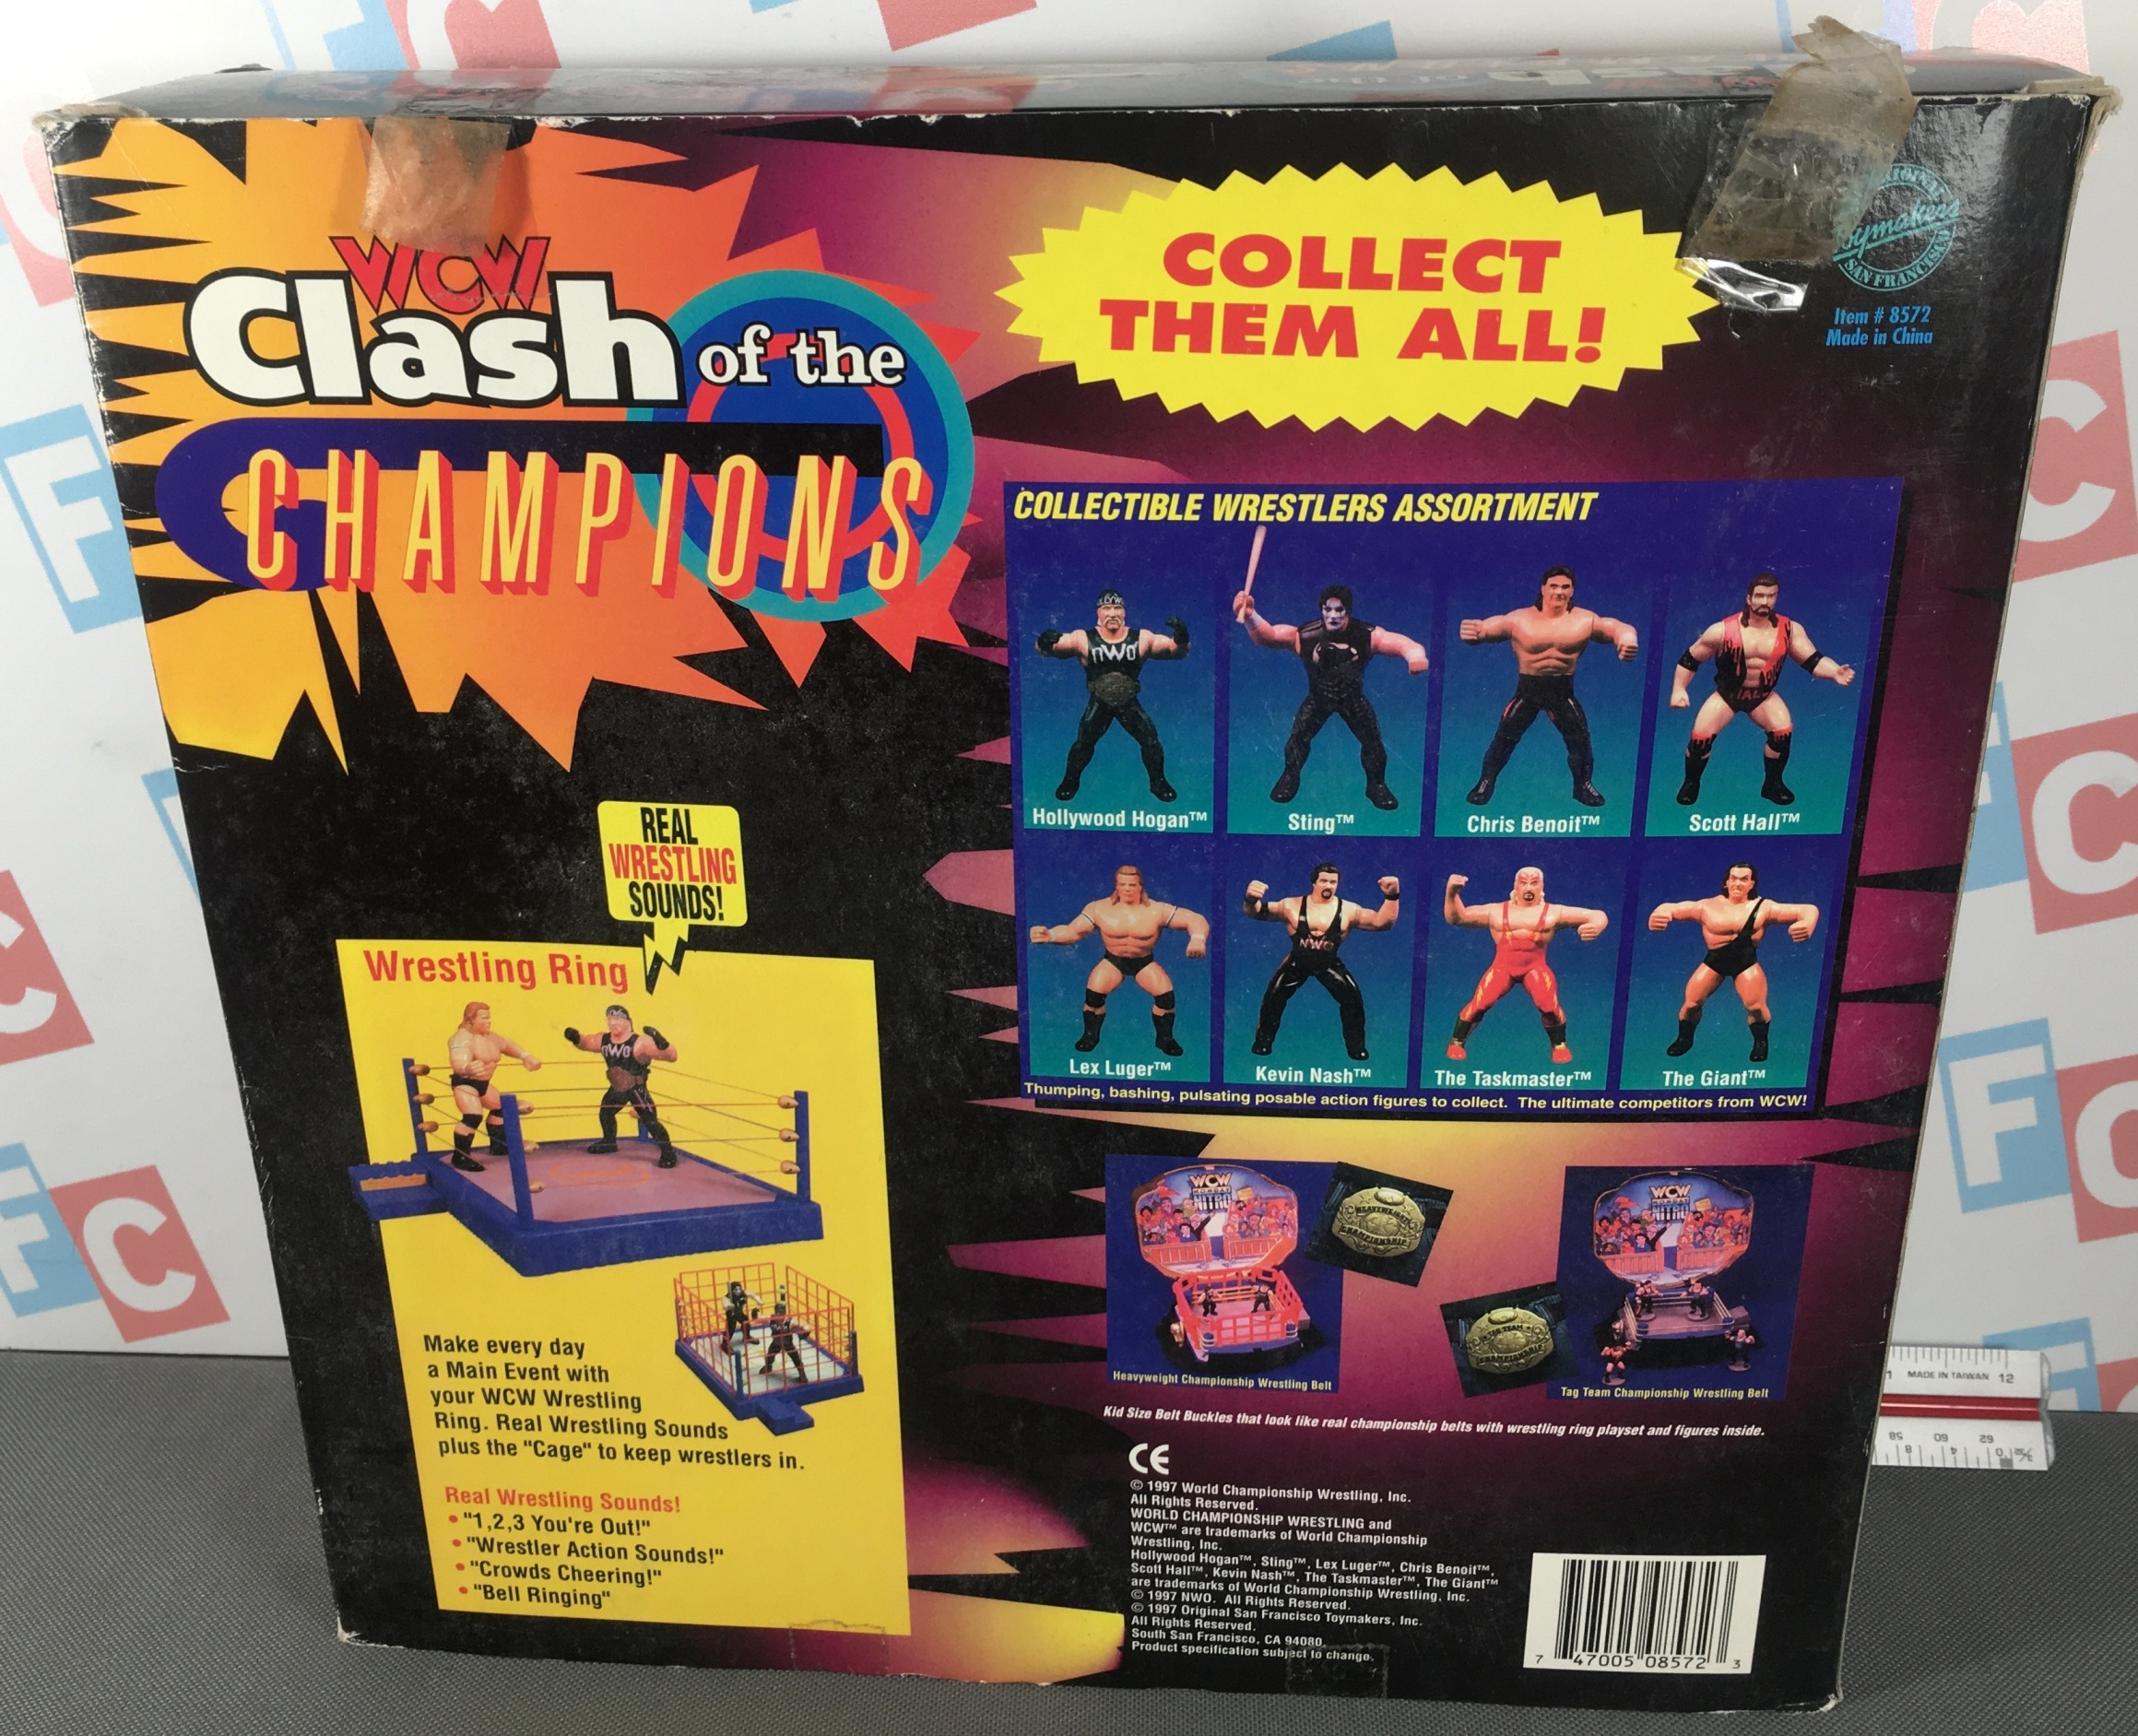 Clash of the Champions (Lex Luger & Scott Hall Box Set)